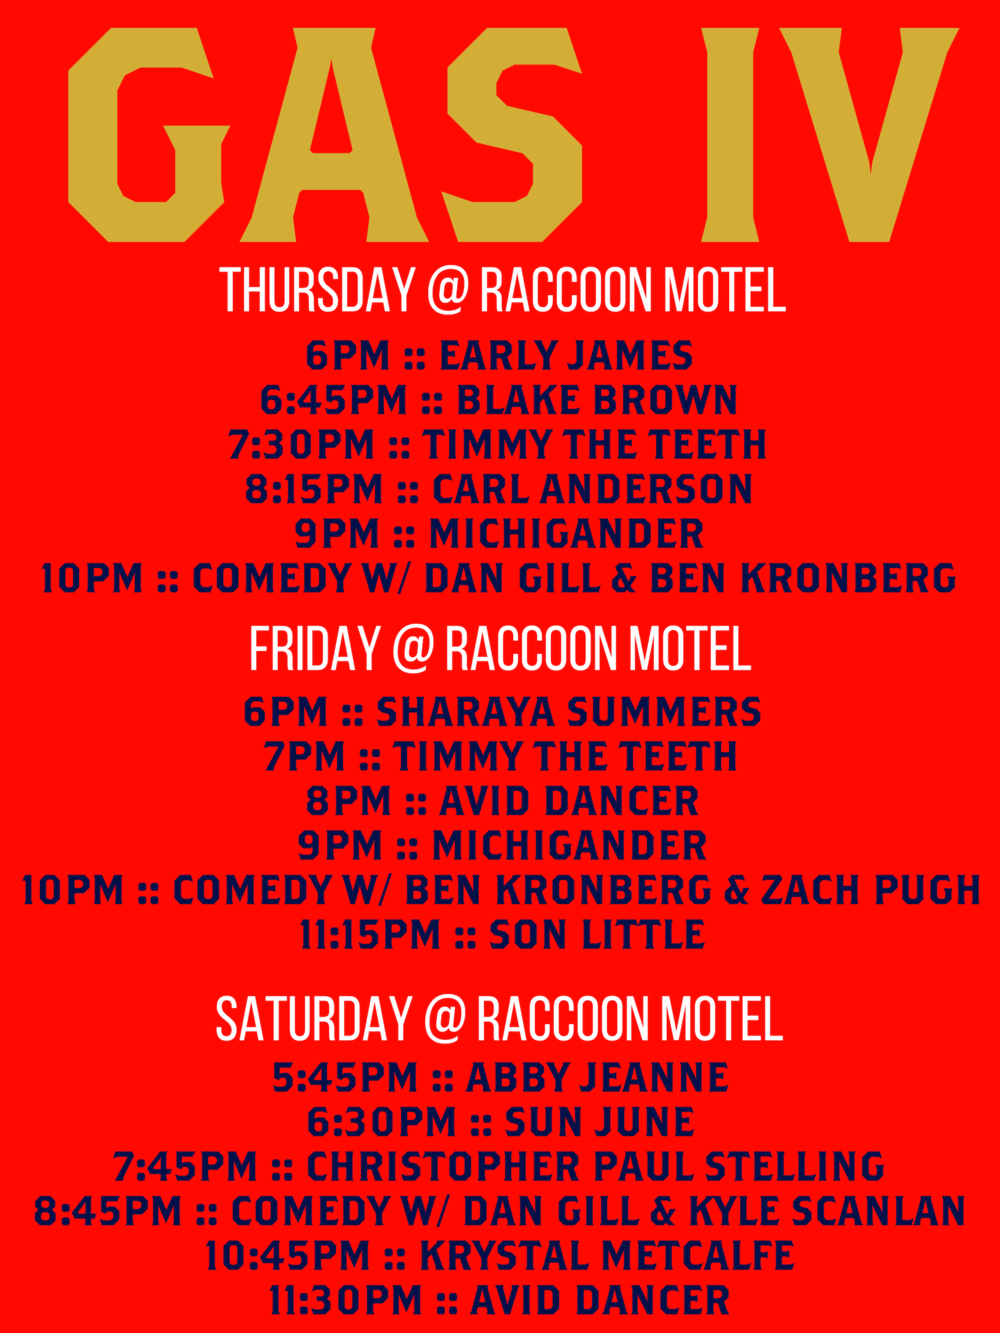 GAS IV Raccoon Schedule.png